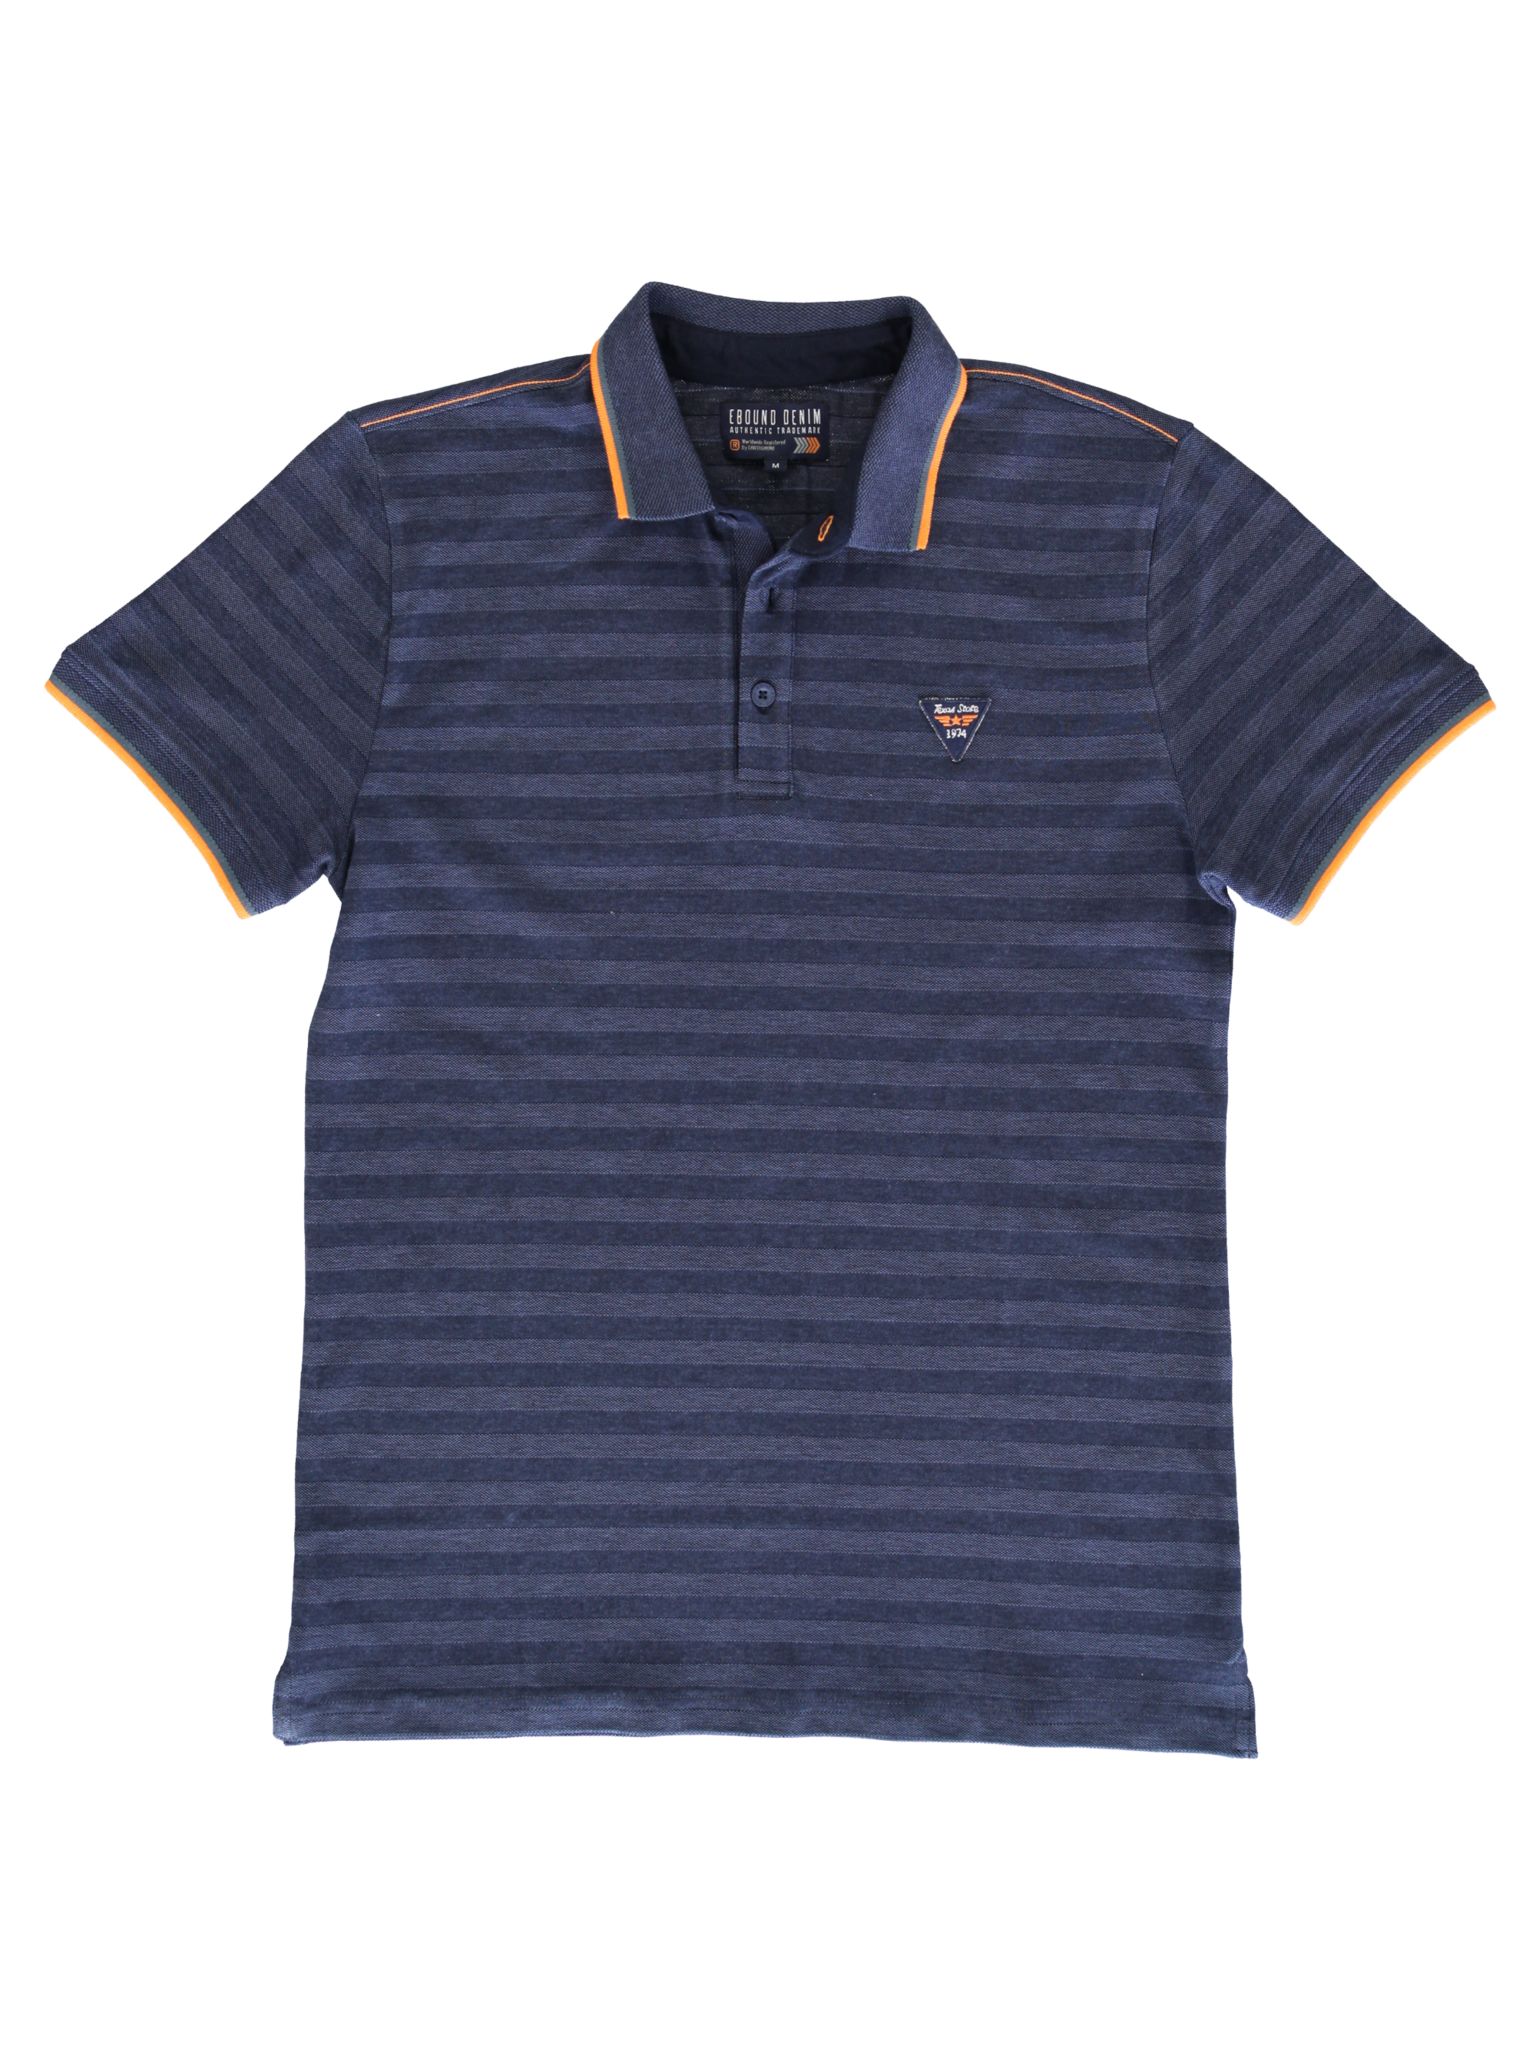 All Brands   Summerproducts Men   Polo   18 pcs/box